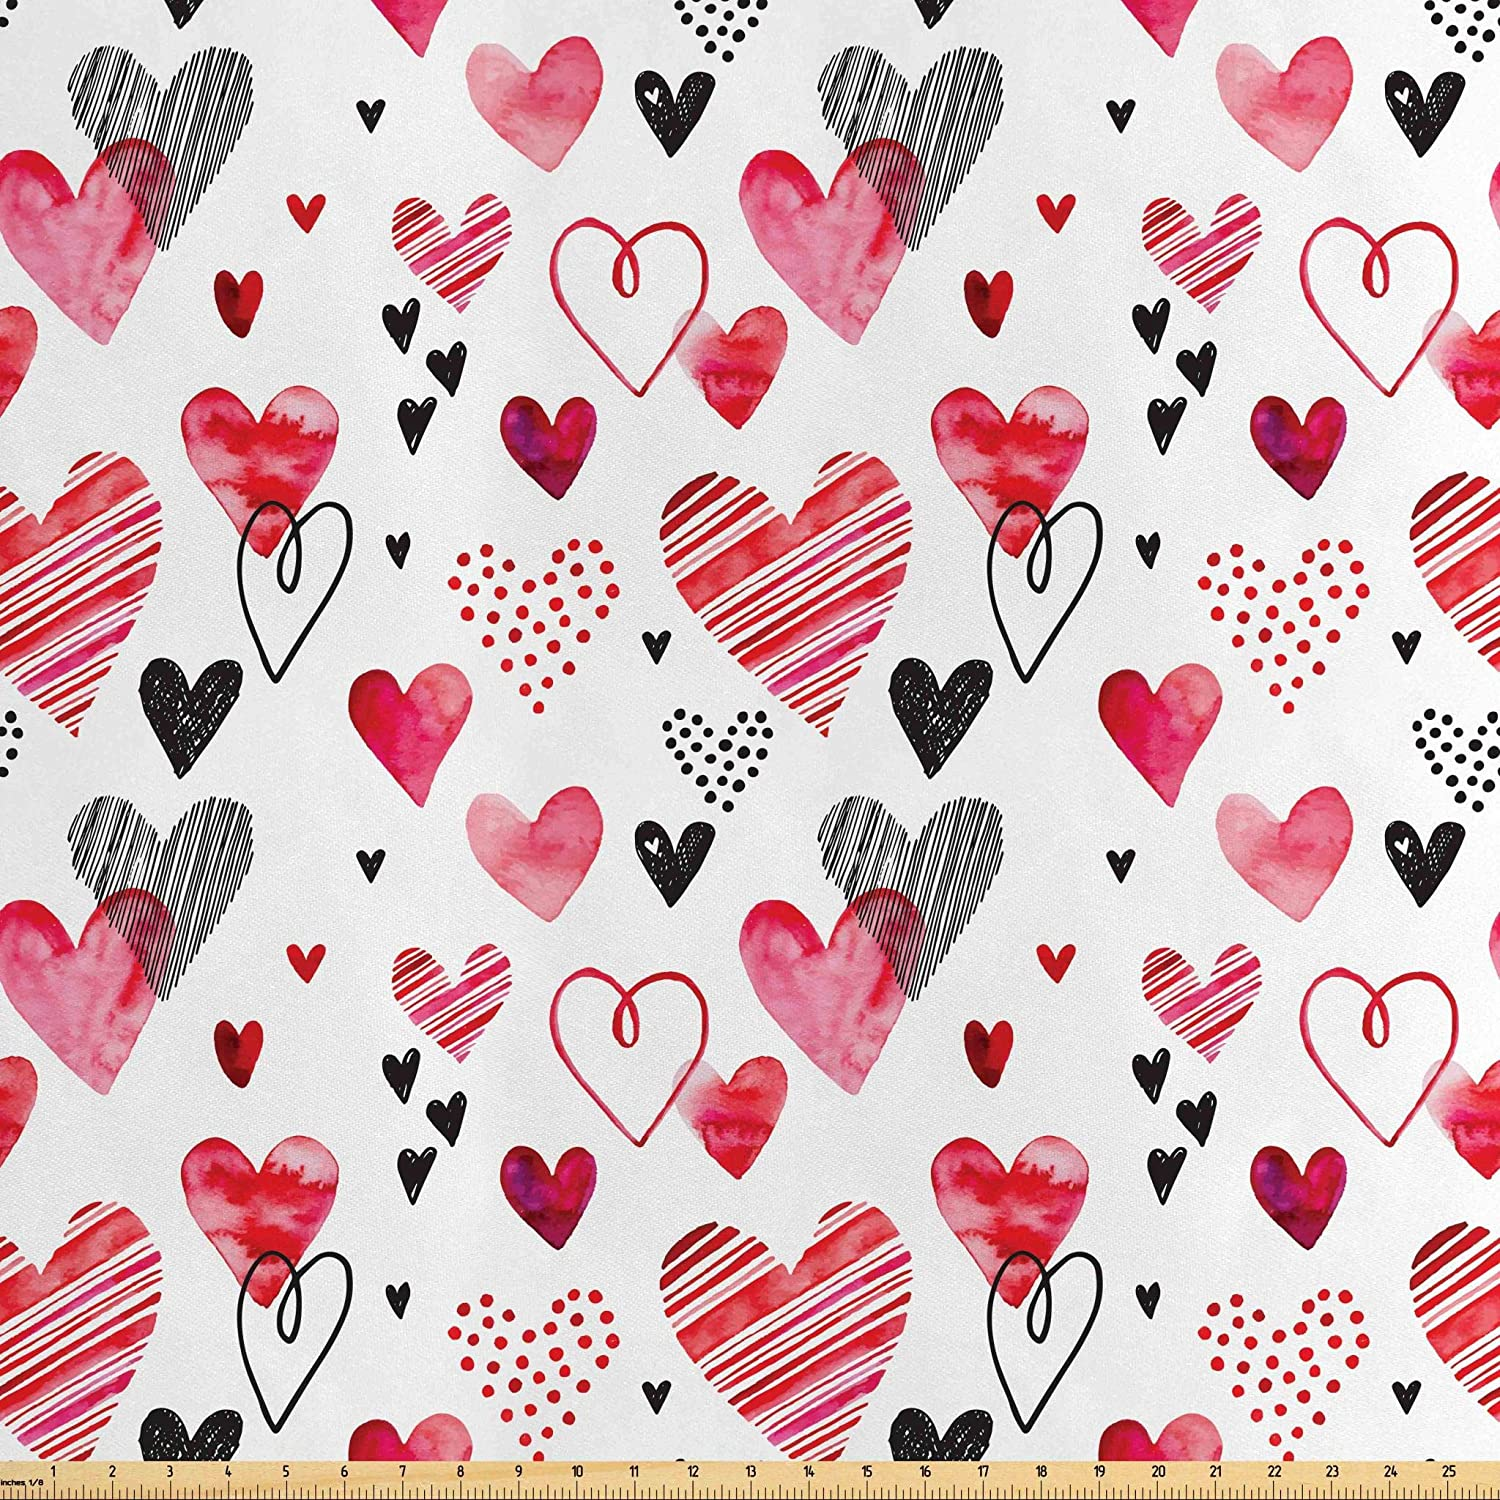 New Valentines Love Prints 1//2 Yard Choice Of Print Cotton Fabric Page Hearts